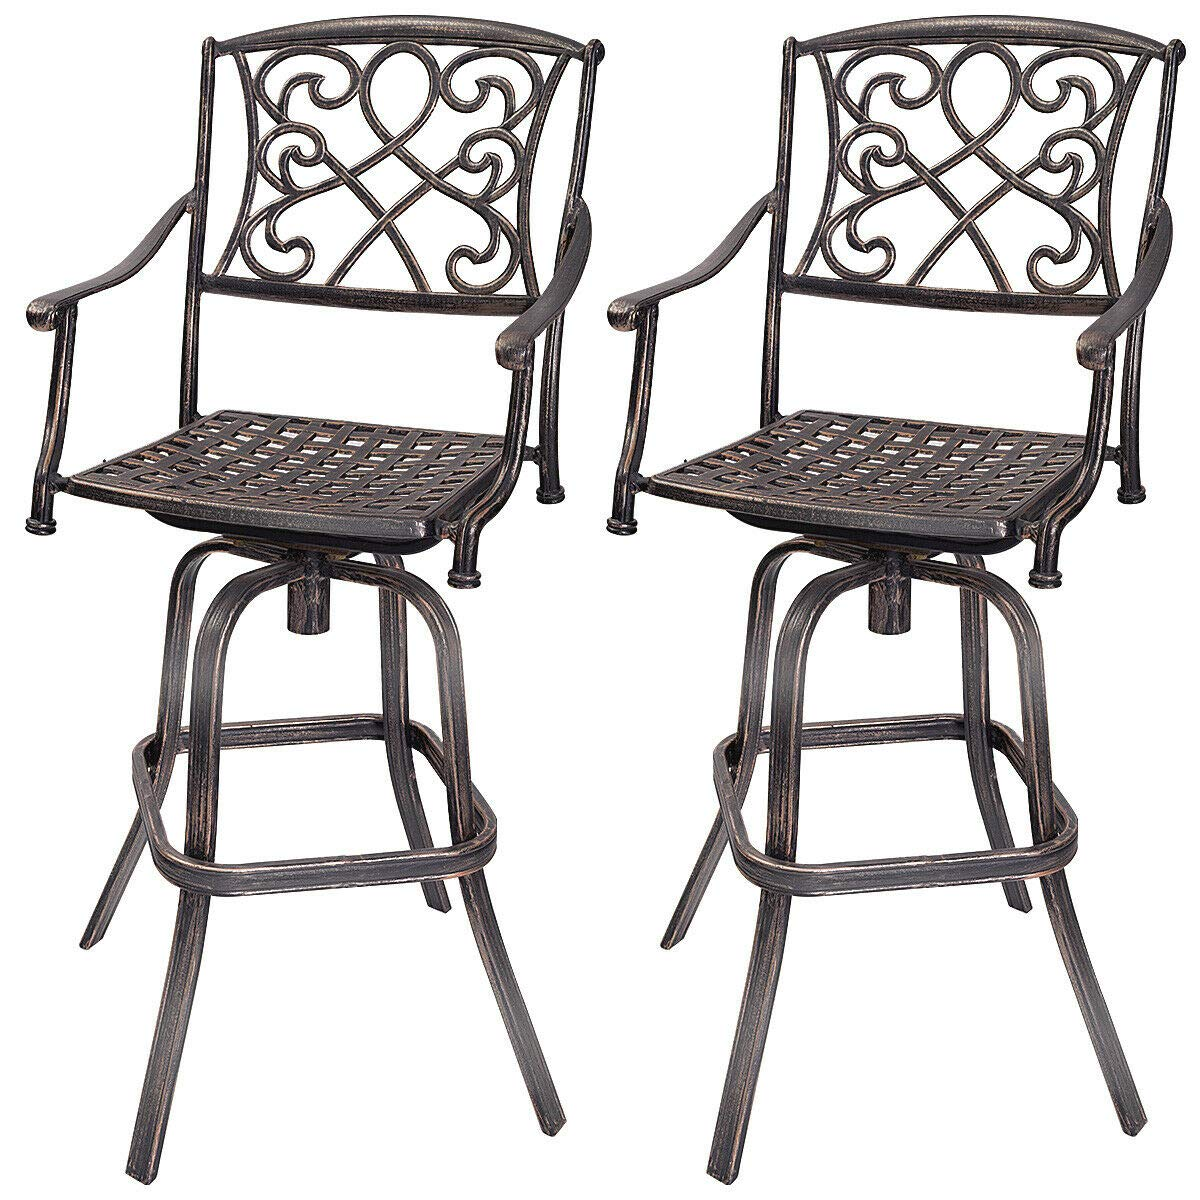 COSTWAY Bar Stool Set of 2, Cast Aluminum Vintage Retro Design Patio Outdoor Garden Bistro Furniture Set (2Copper Bar Stool) by COSTWAY